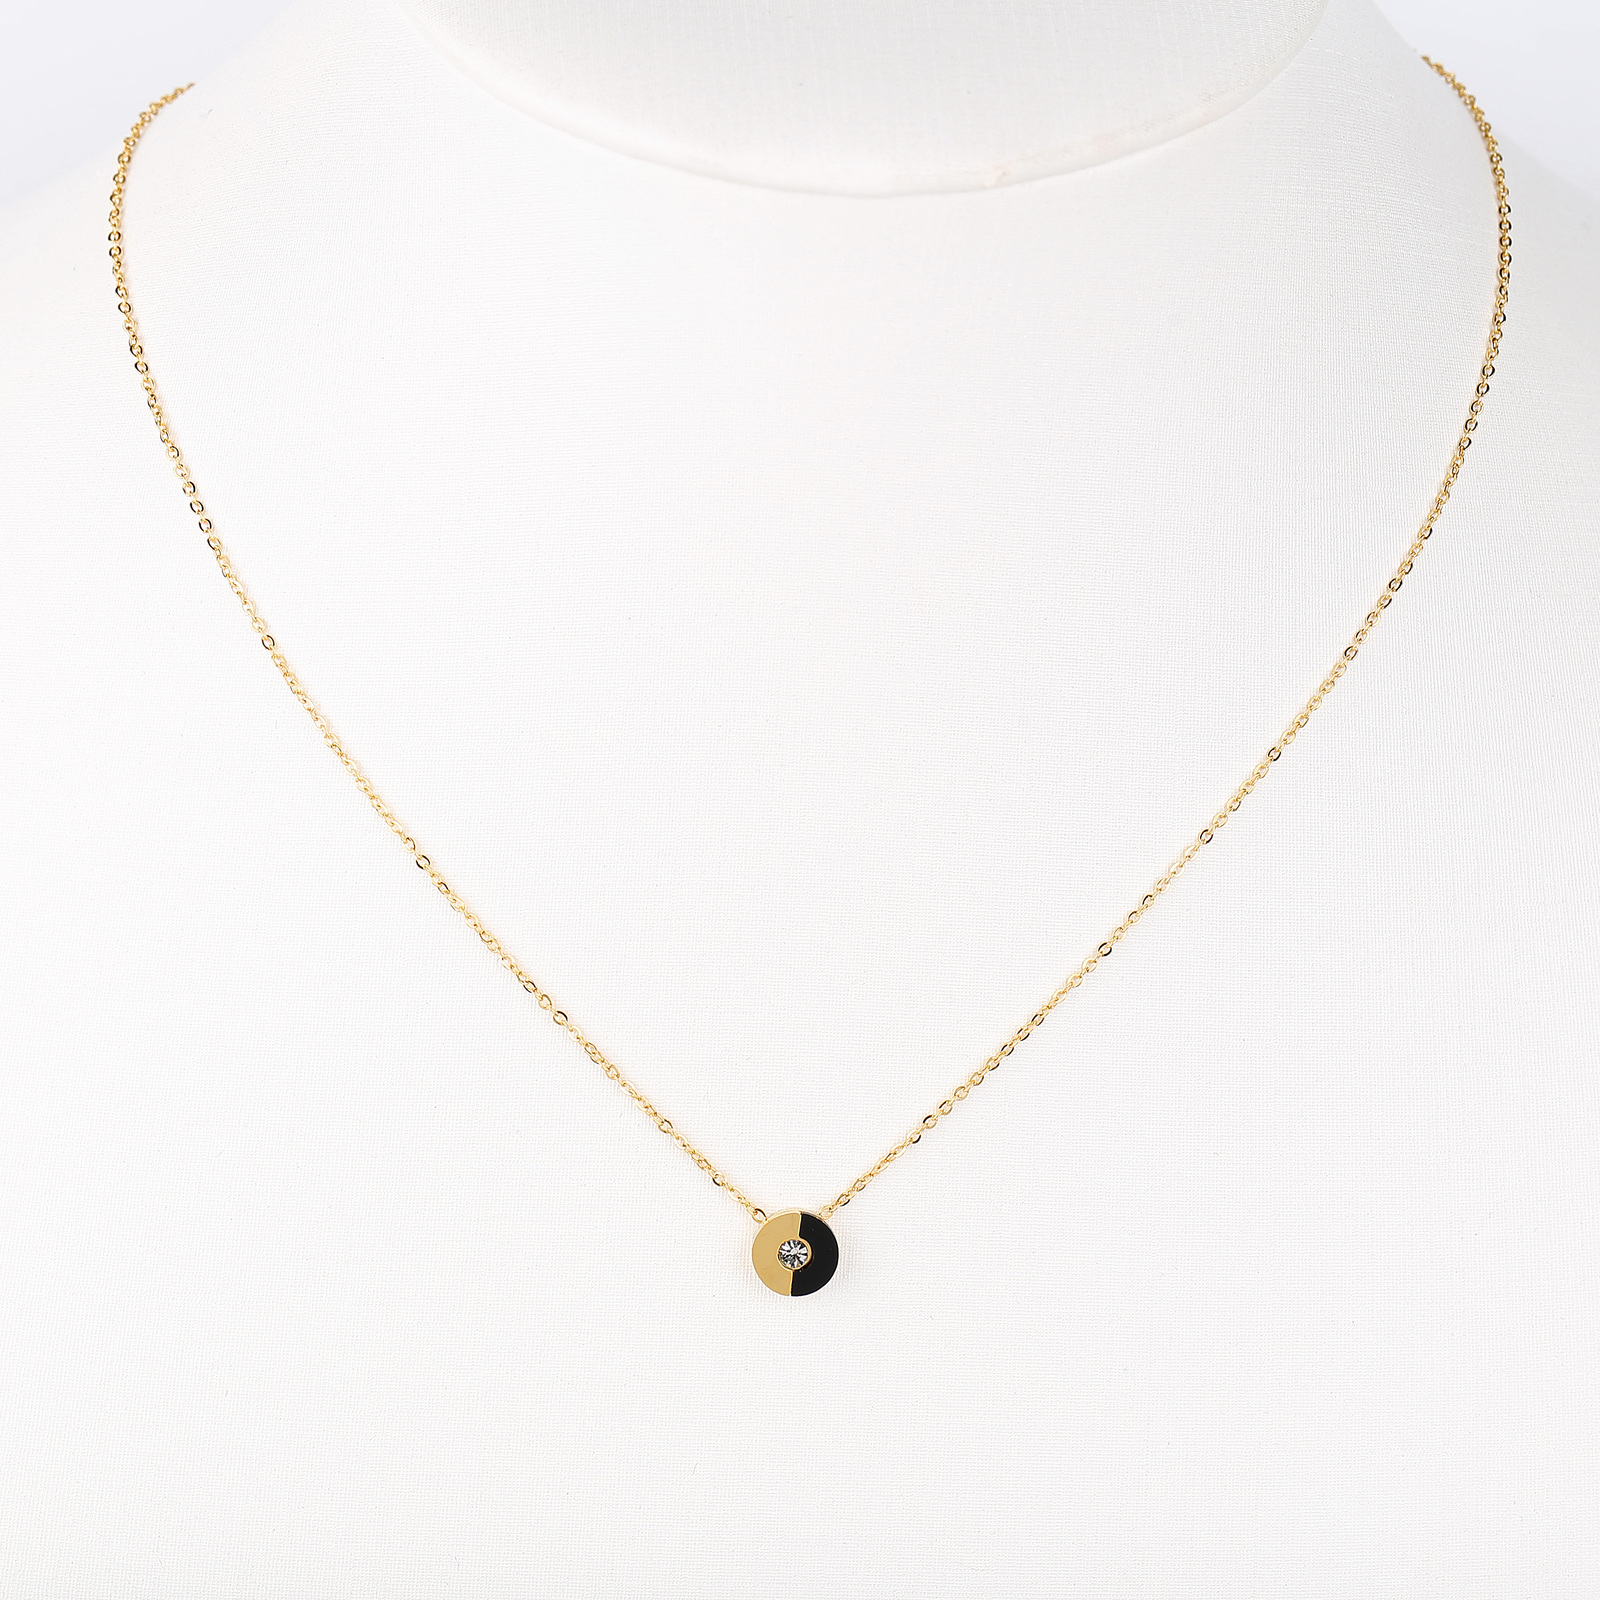 UE- Gold Tone & Jet Black Designer Pendant Necklace With Swarovski Style Crystal